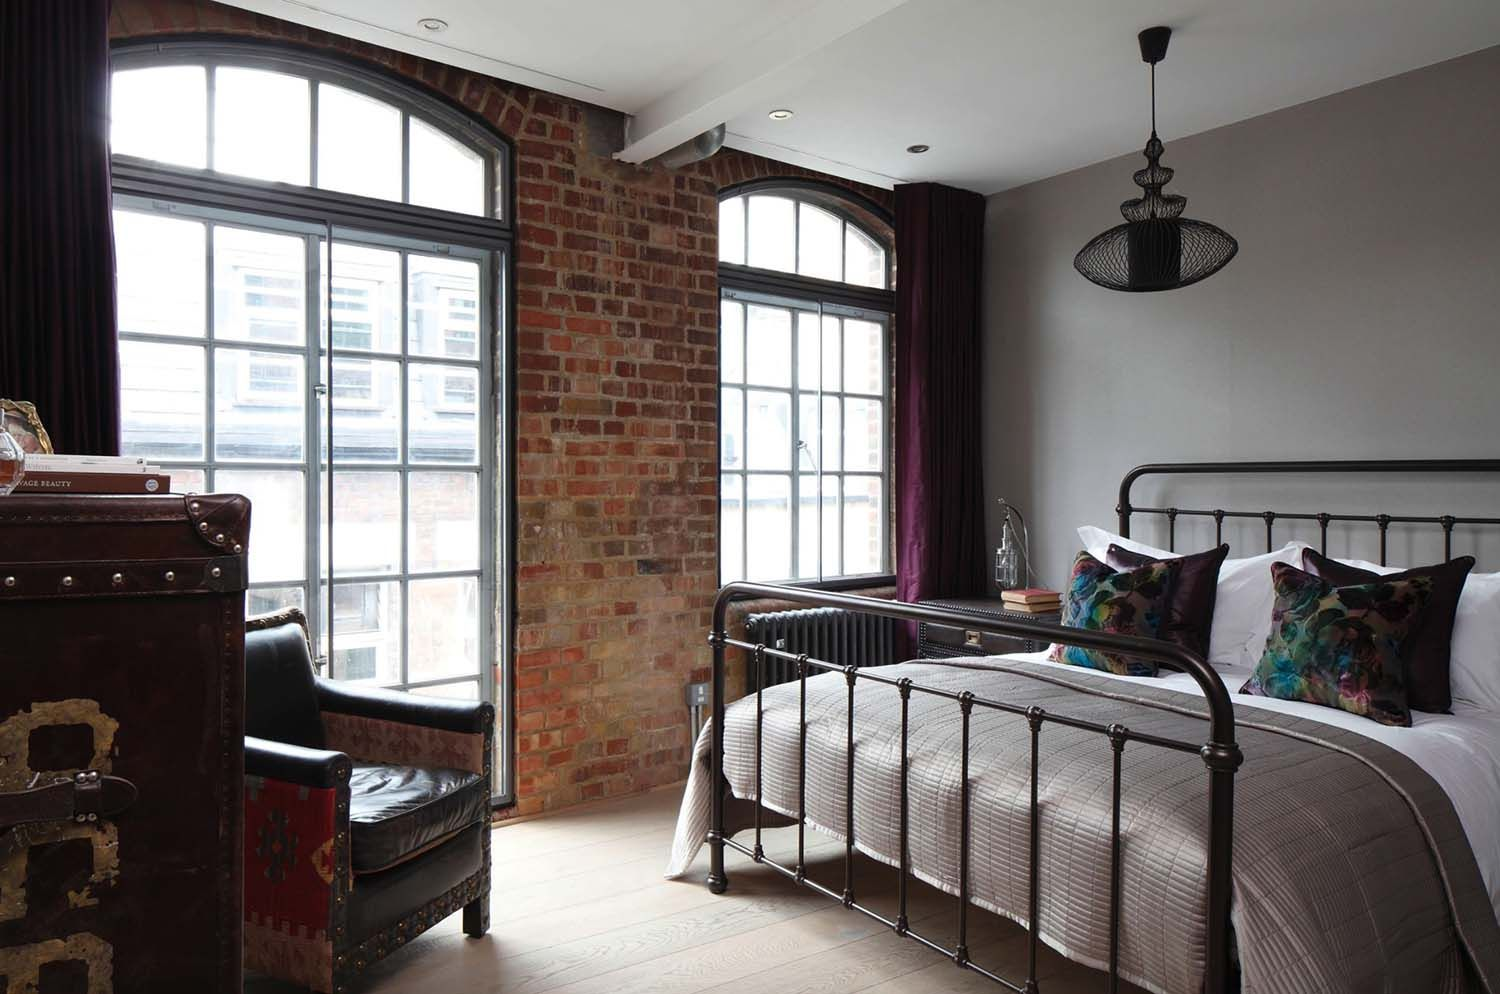 1 bedroom loft apartment  Spectacular loft apartment in SoHo with an industrial edge